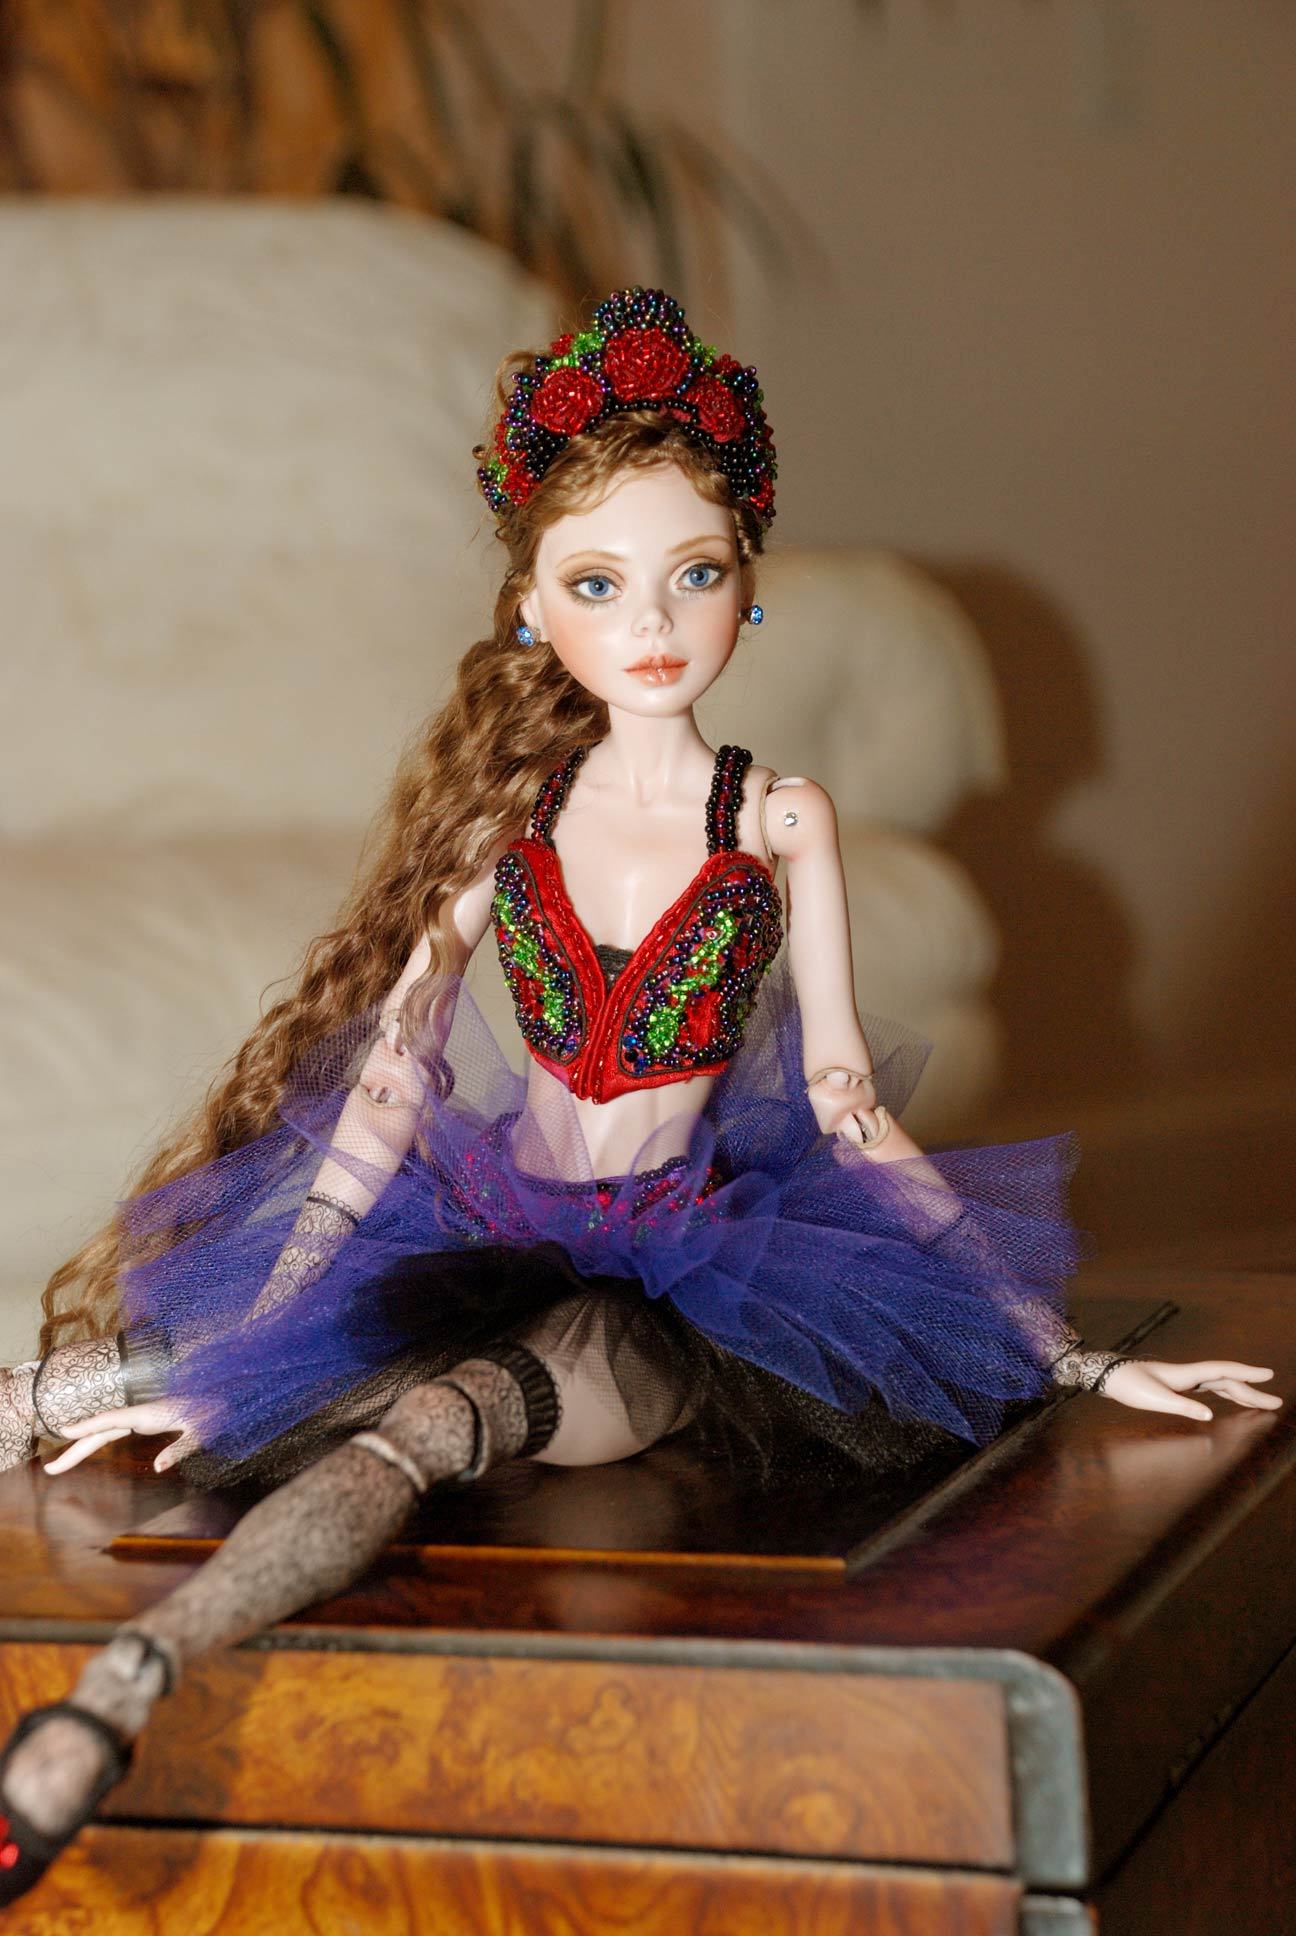 "Ball Jointed Doll (BJD) ""Ballet With Attitude"" Original by Cindy M McClure 2010 Nude"